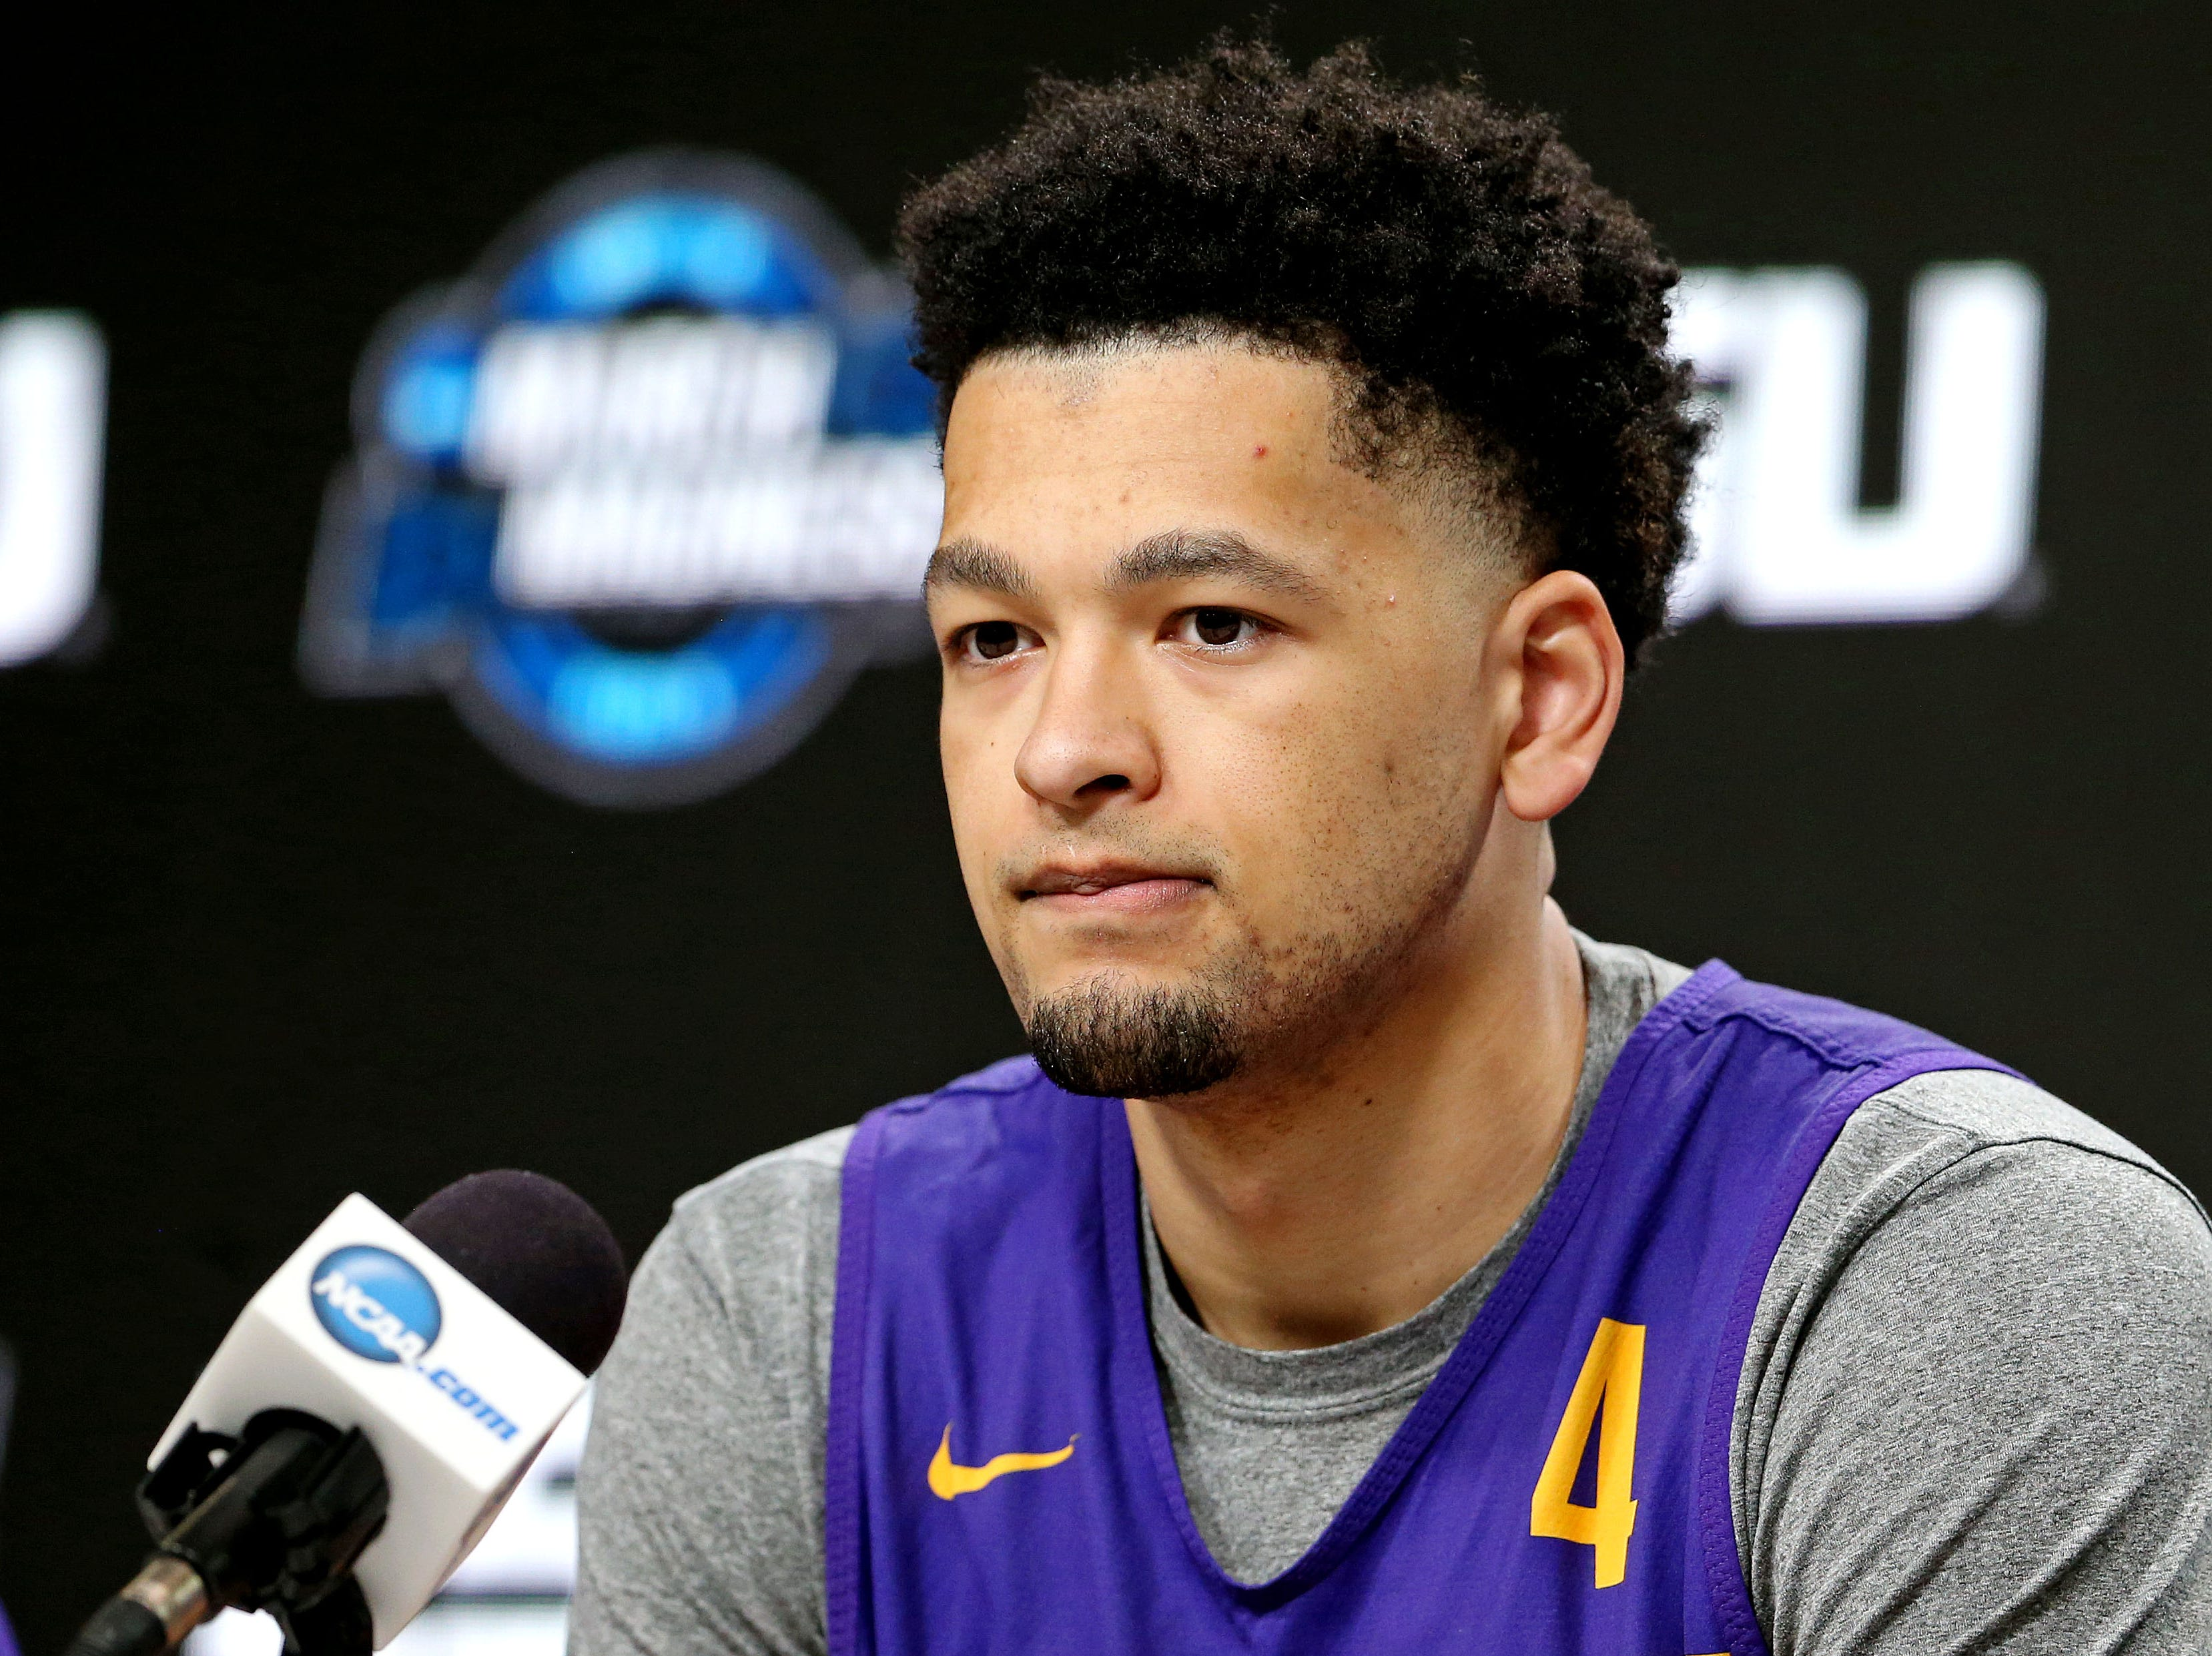 Mar 28, 2019; Washington, DC, USA; LSU Tigers guard Skylar Mays (4) speaks in a press conference during practice for the east regional of the 2019 NCAA Tournament at Capital One Arena. Mandatory Credit: Peter Casey-USA TODAY Sports